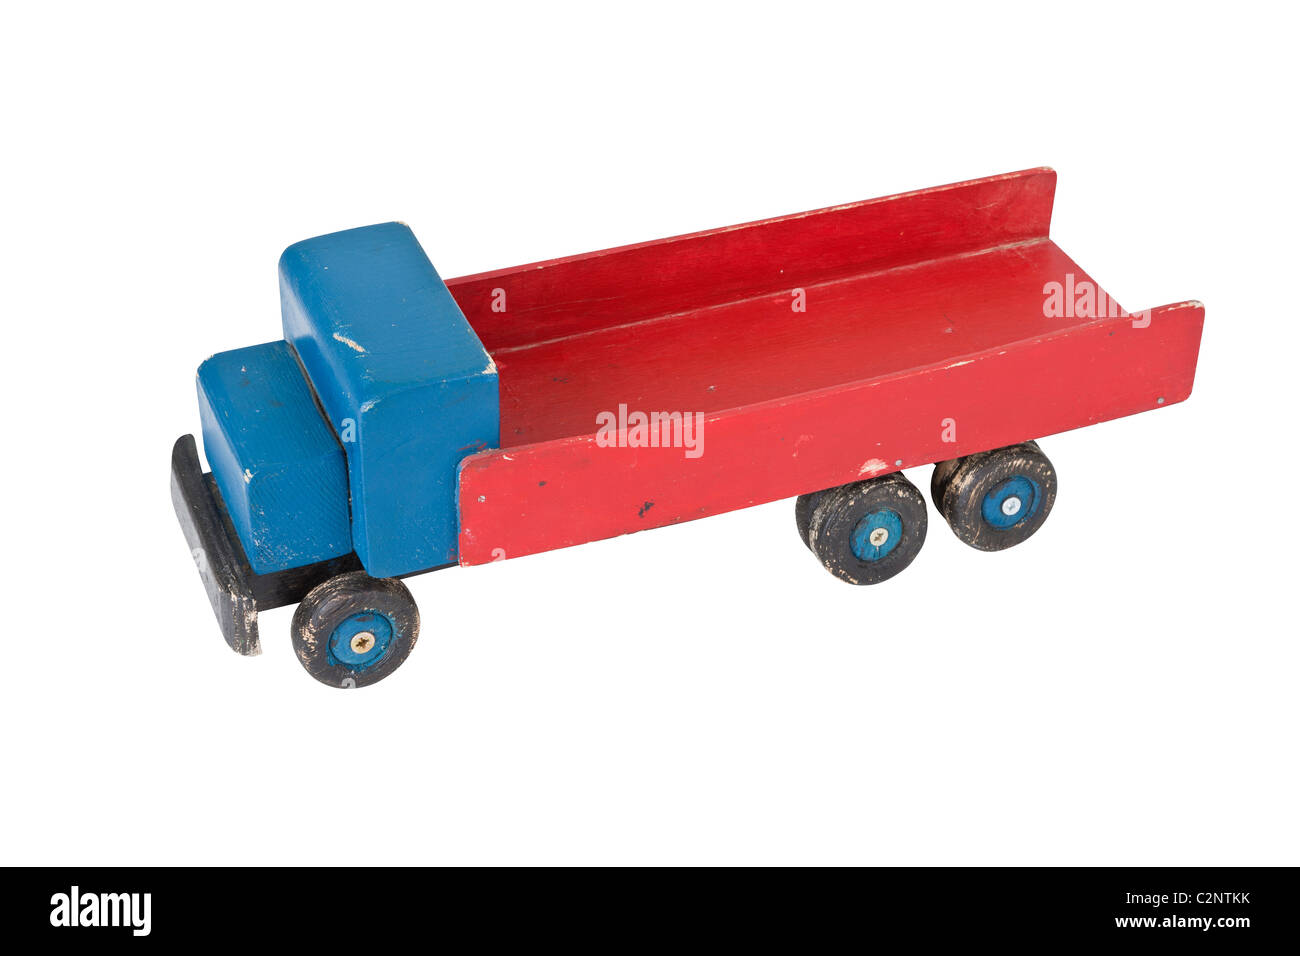 Vintage wooden toy truck - homemade 3/4 view - Stock Image